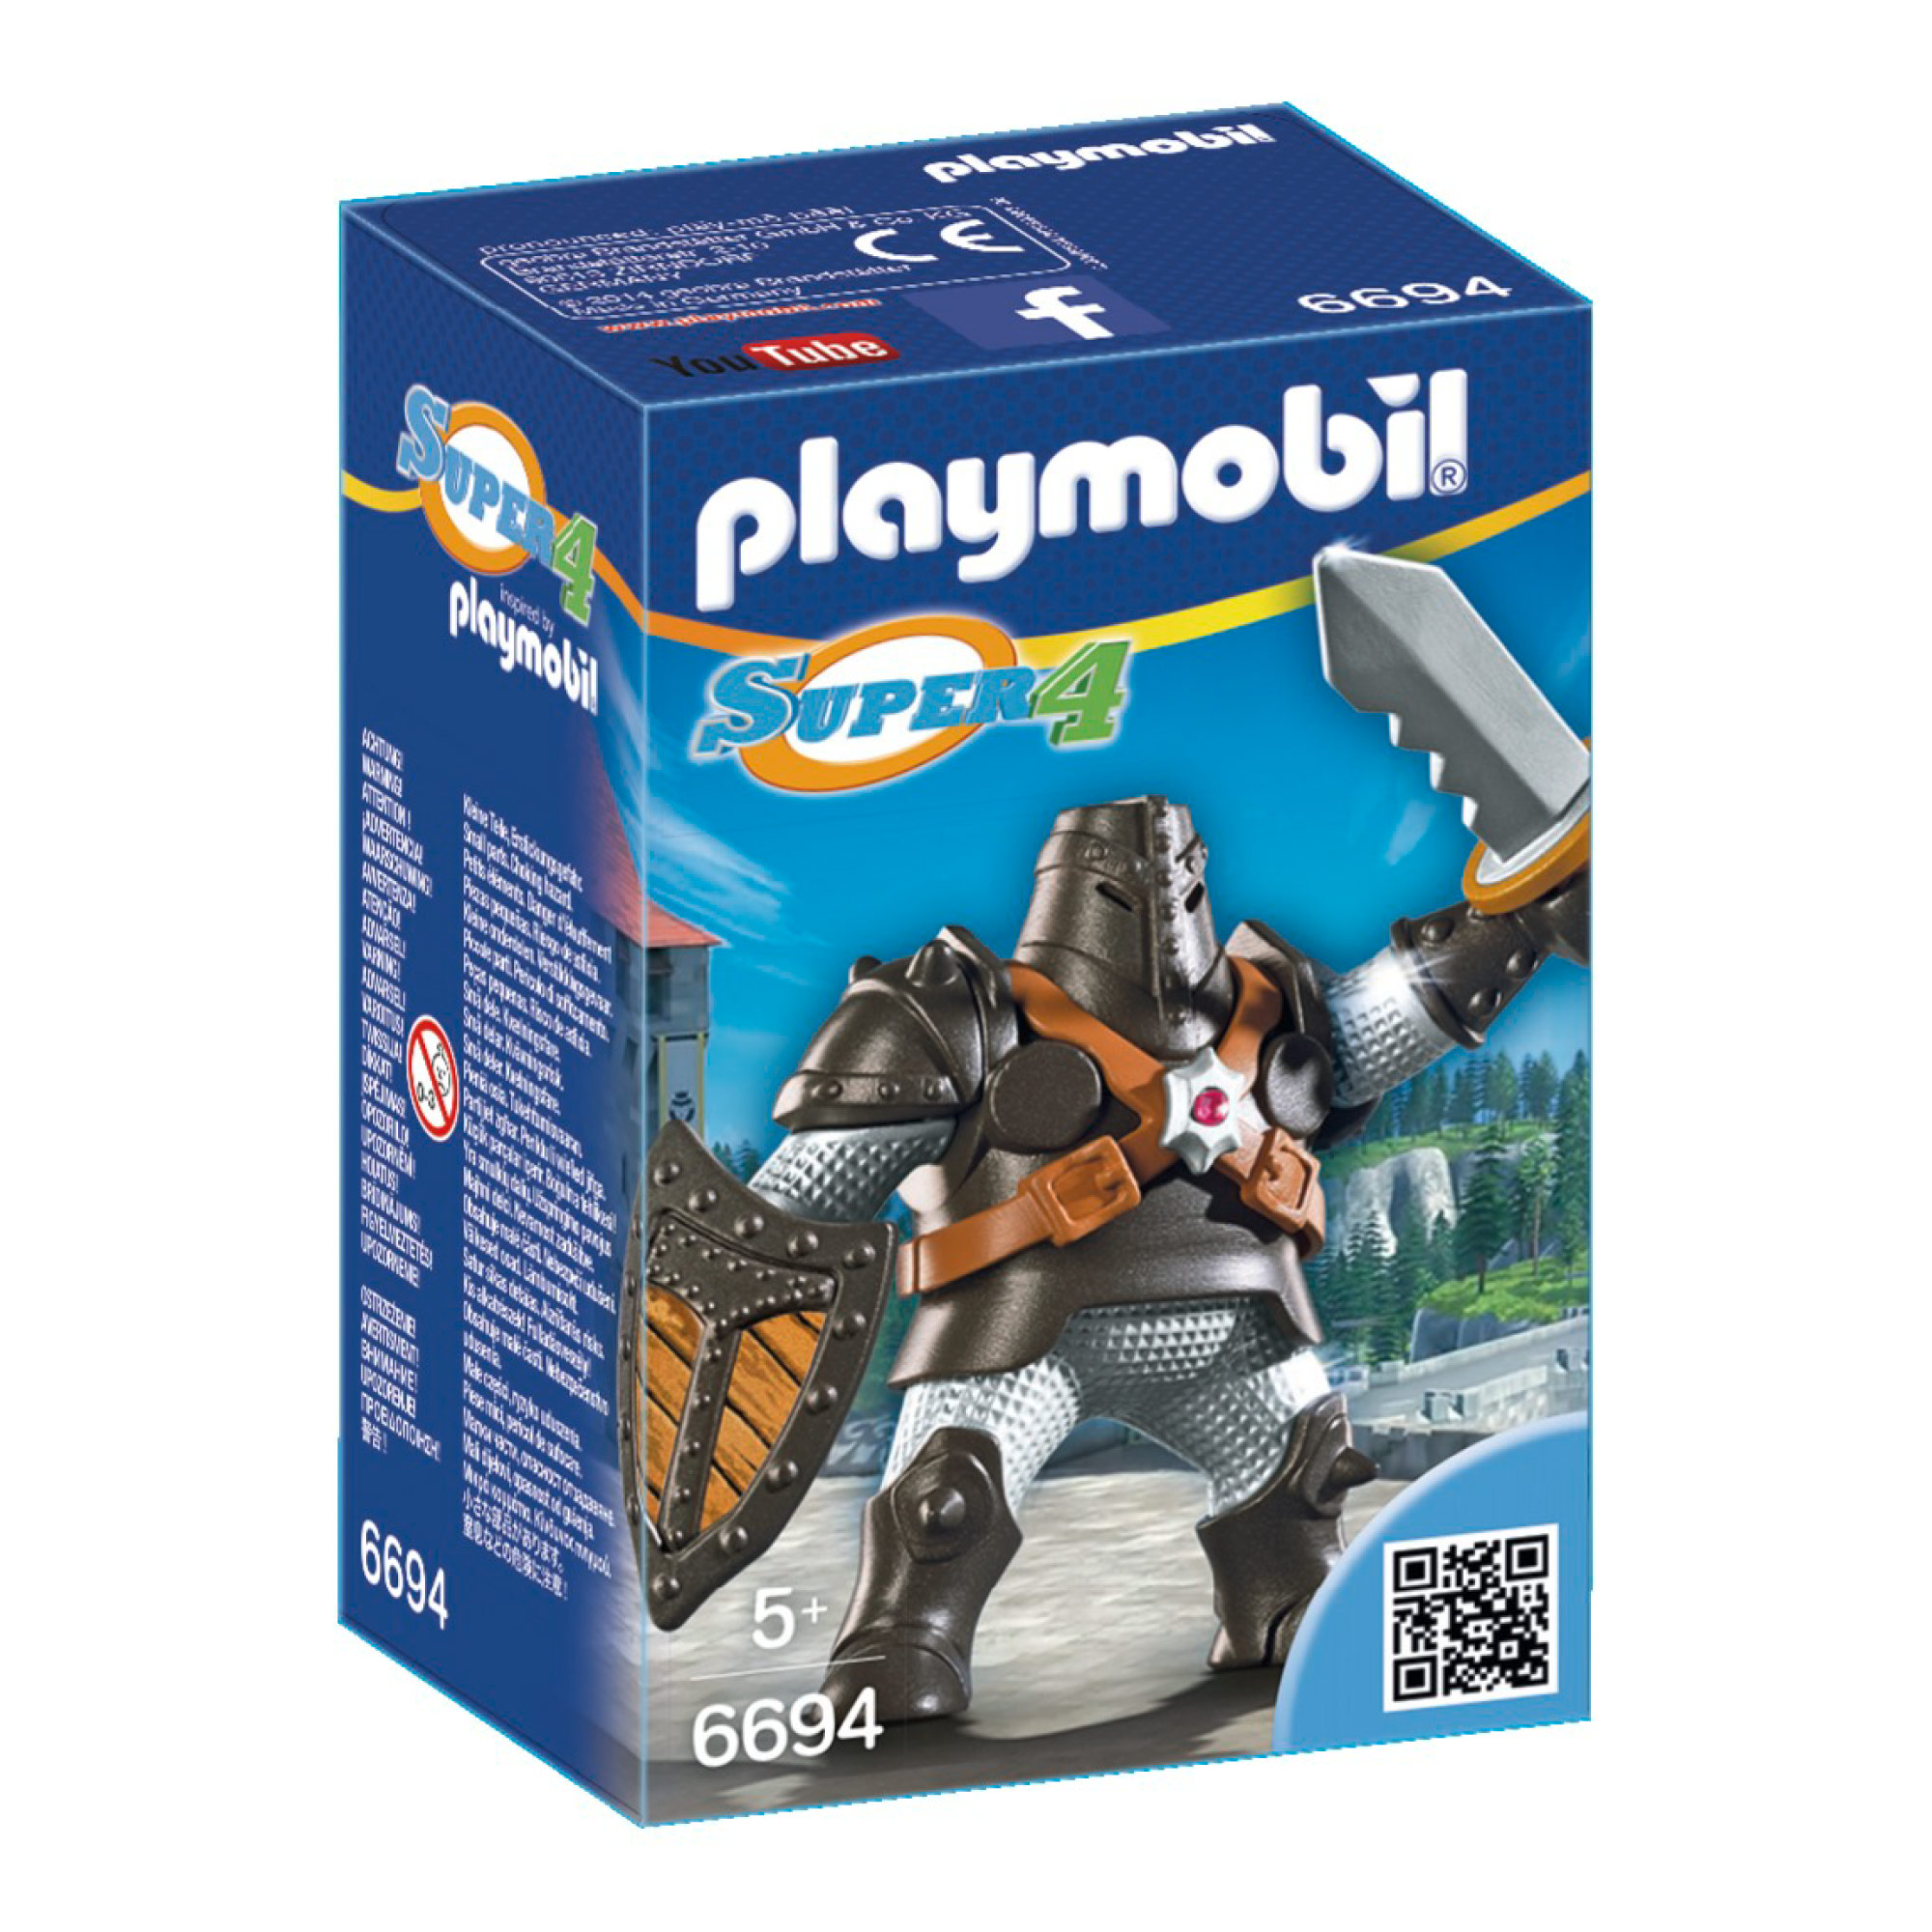 Playmobil Super 4 Black Colossus 6694